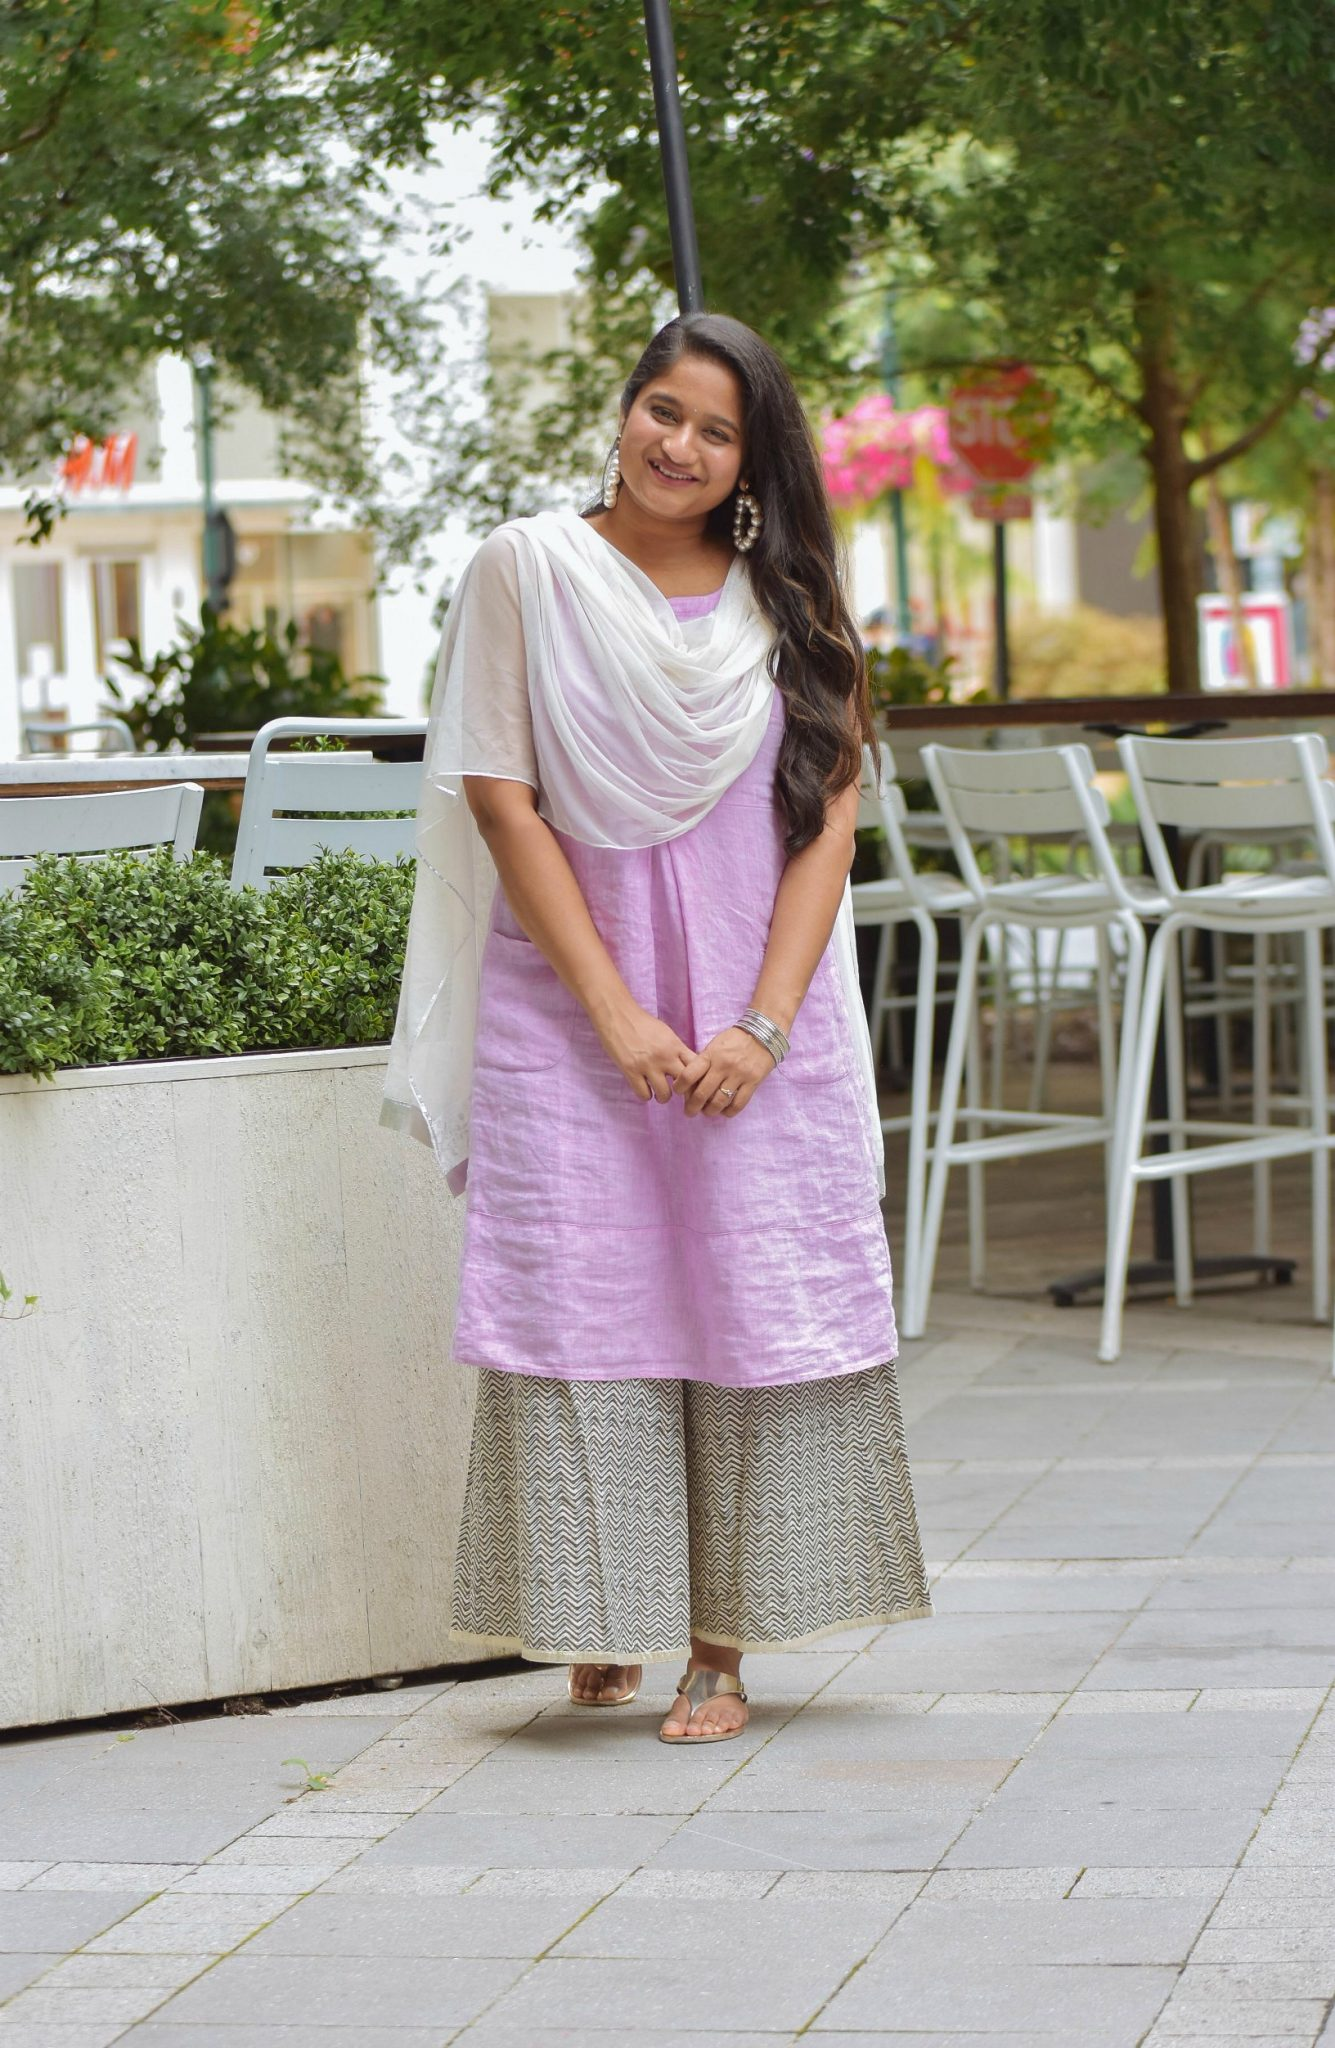 Wearing J.Jill Pleated Knit A-Line Dress, Wide leg pant, Pearl large hoops, White dupatta6 | Indo Western by popular Maryland modest fashion blog, Dreaming Loud: image of a woman wearing an Indo Wester outfit with a purple linen dress, culottes, sliver sandals, pearl hoop earrings, and a silk dupatta.